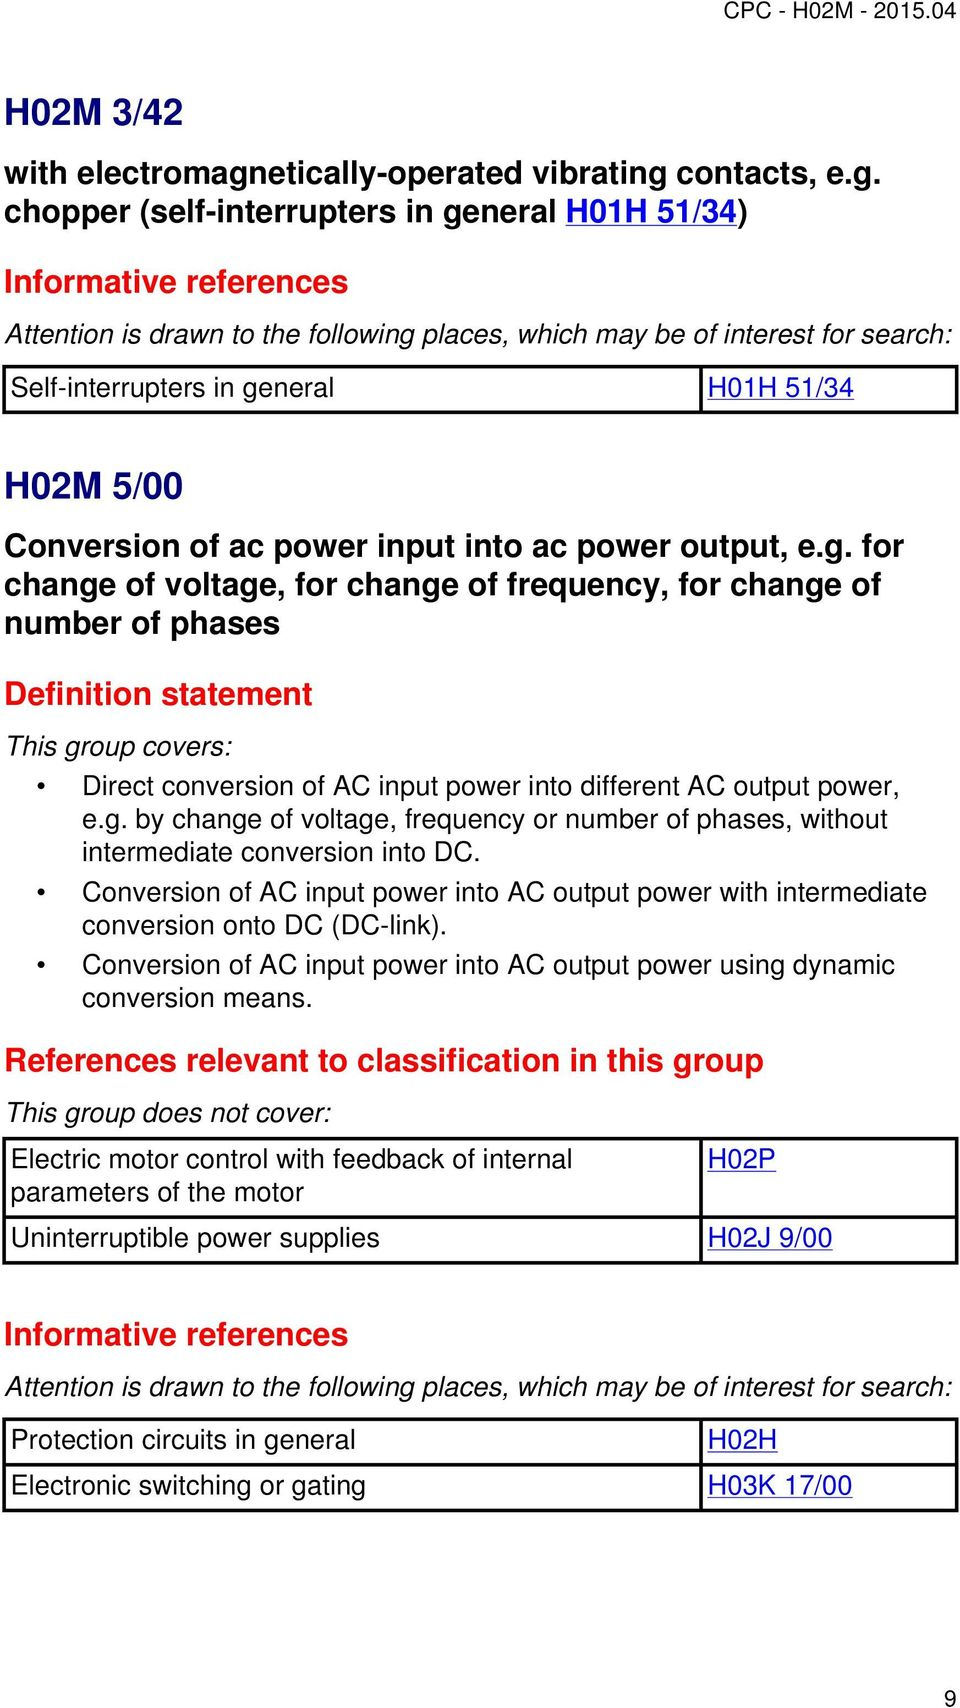 Conversion of AC input power into AC output power with intermediate conversion onto DC (DC-link). Conversion of AC input power into AC output power using dynamic conversion means.